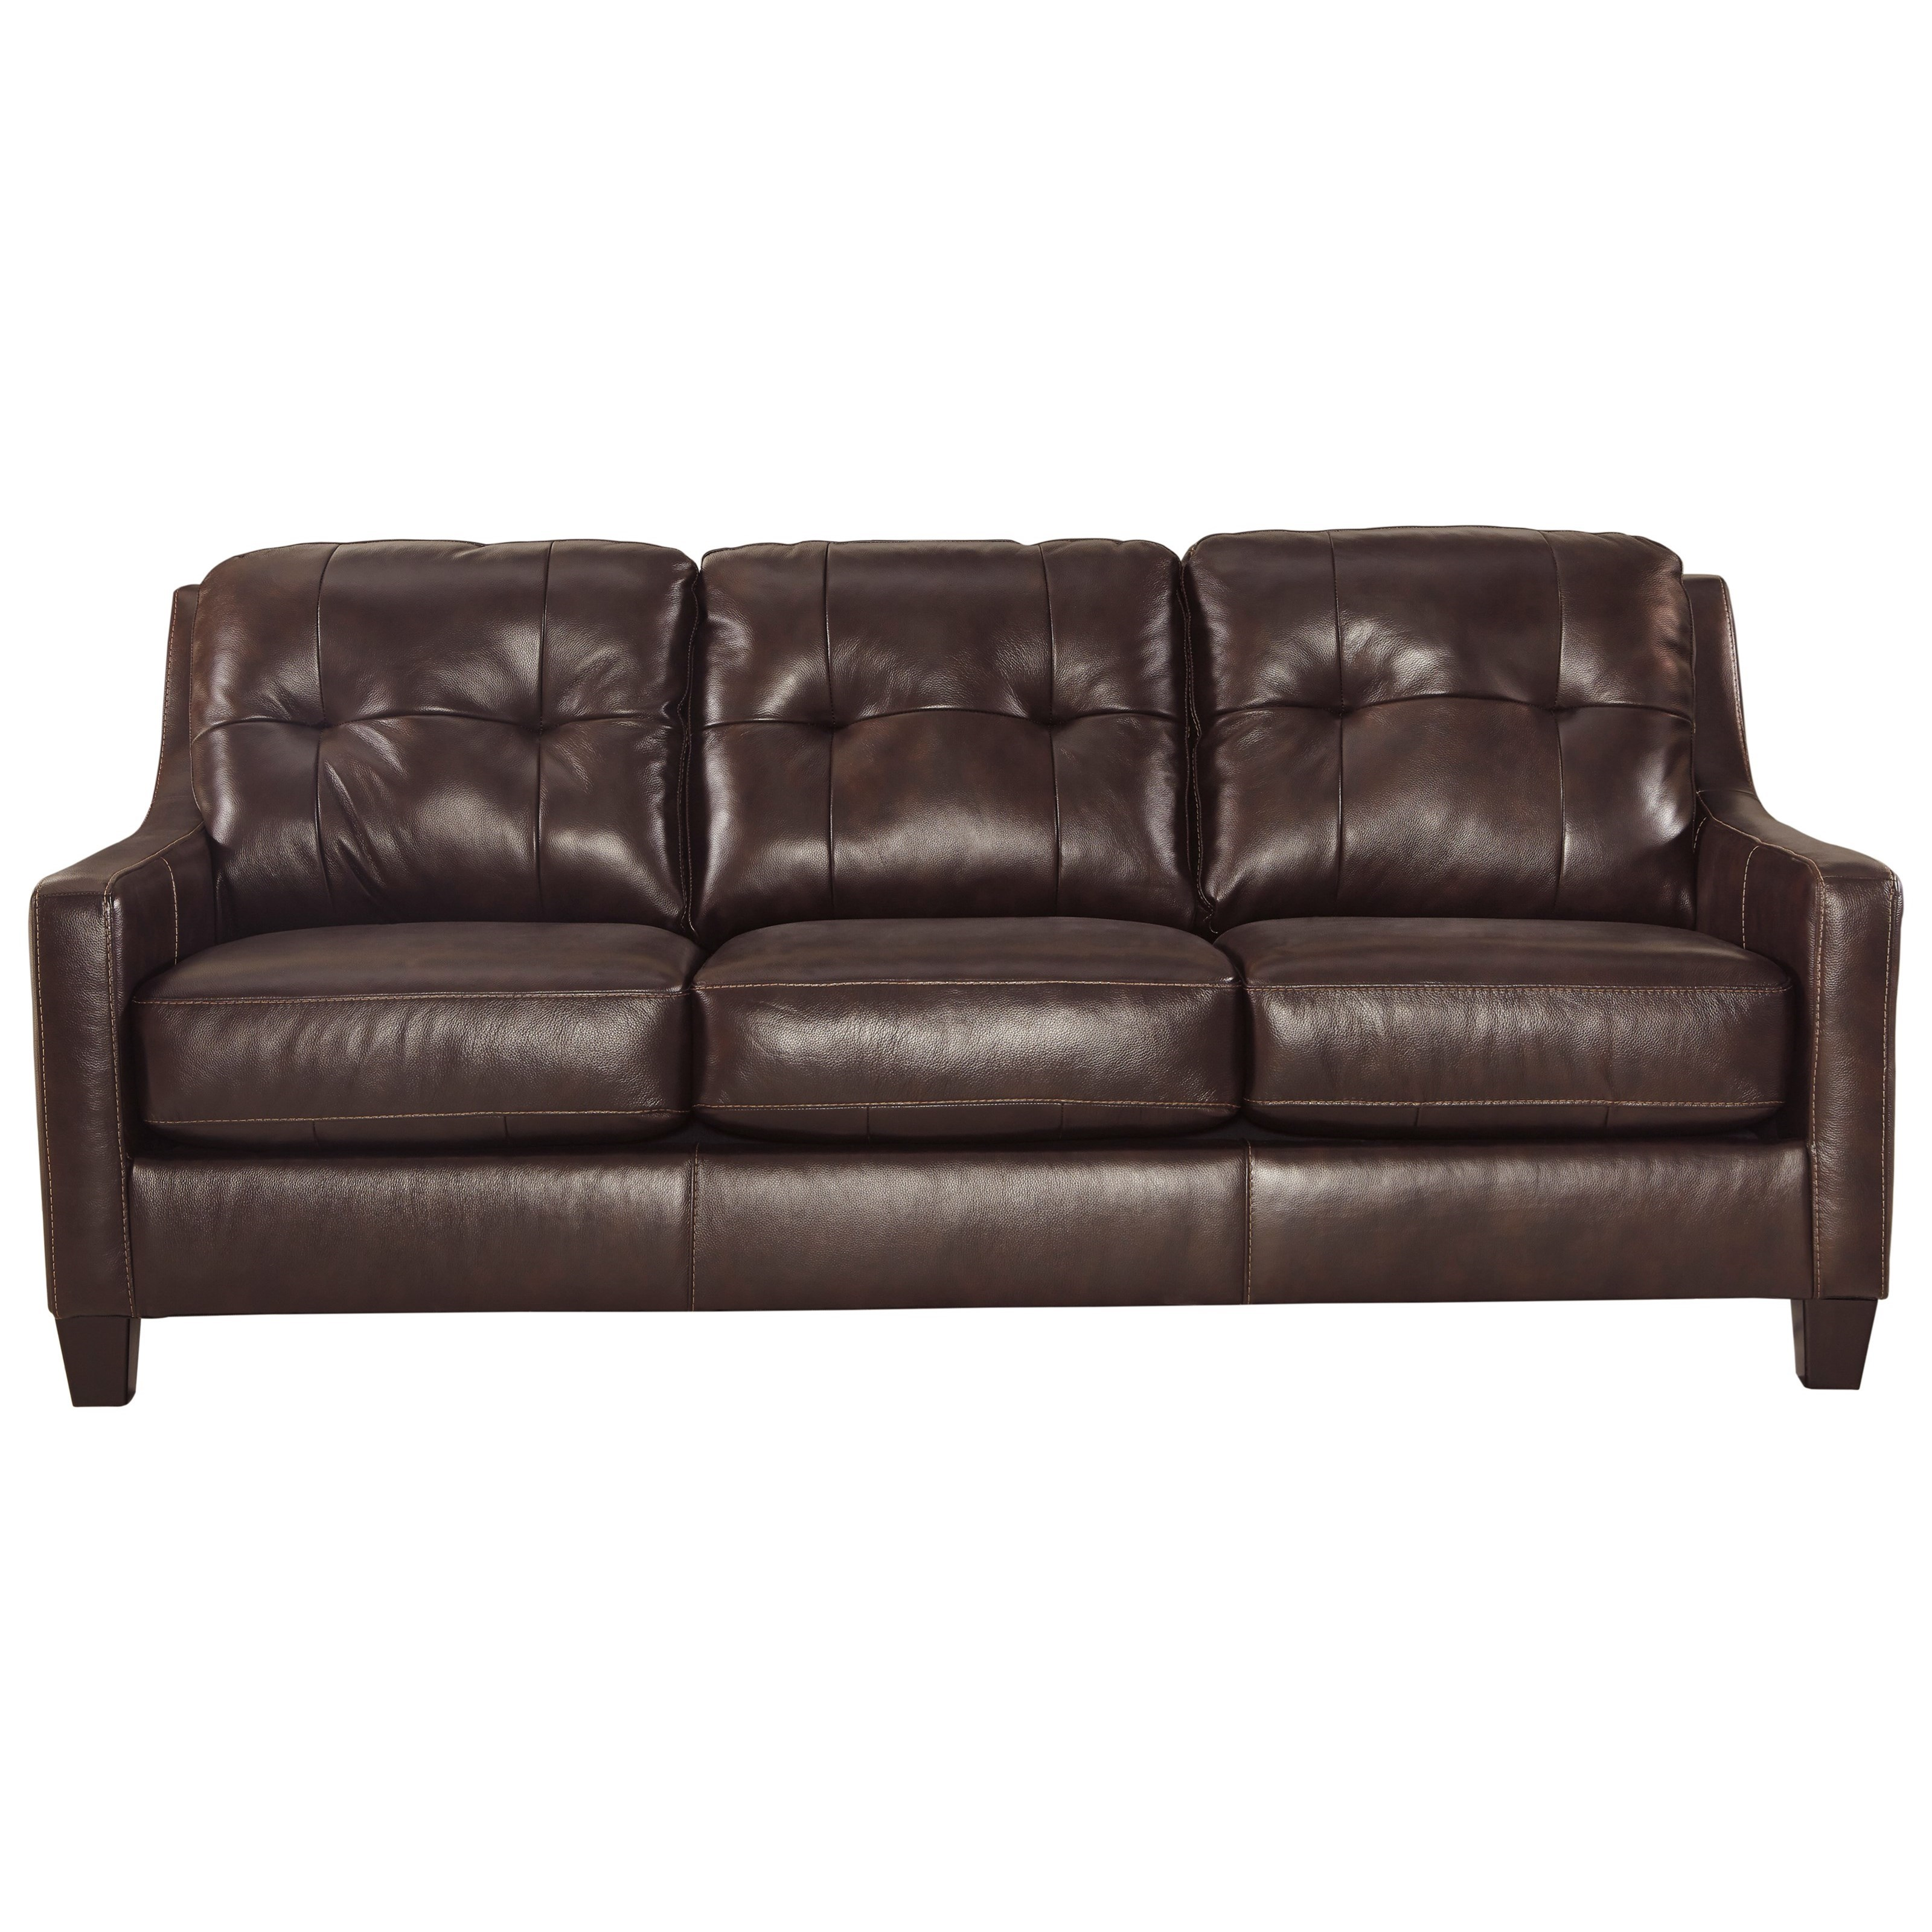 Signature Design by Ashley O'Kean Queen Sofa Sleeper - Item Number: 5910539